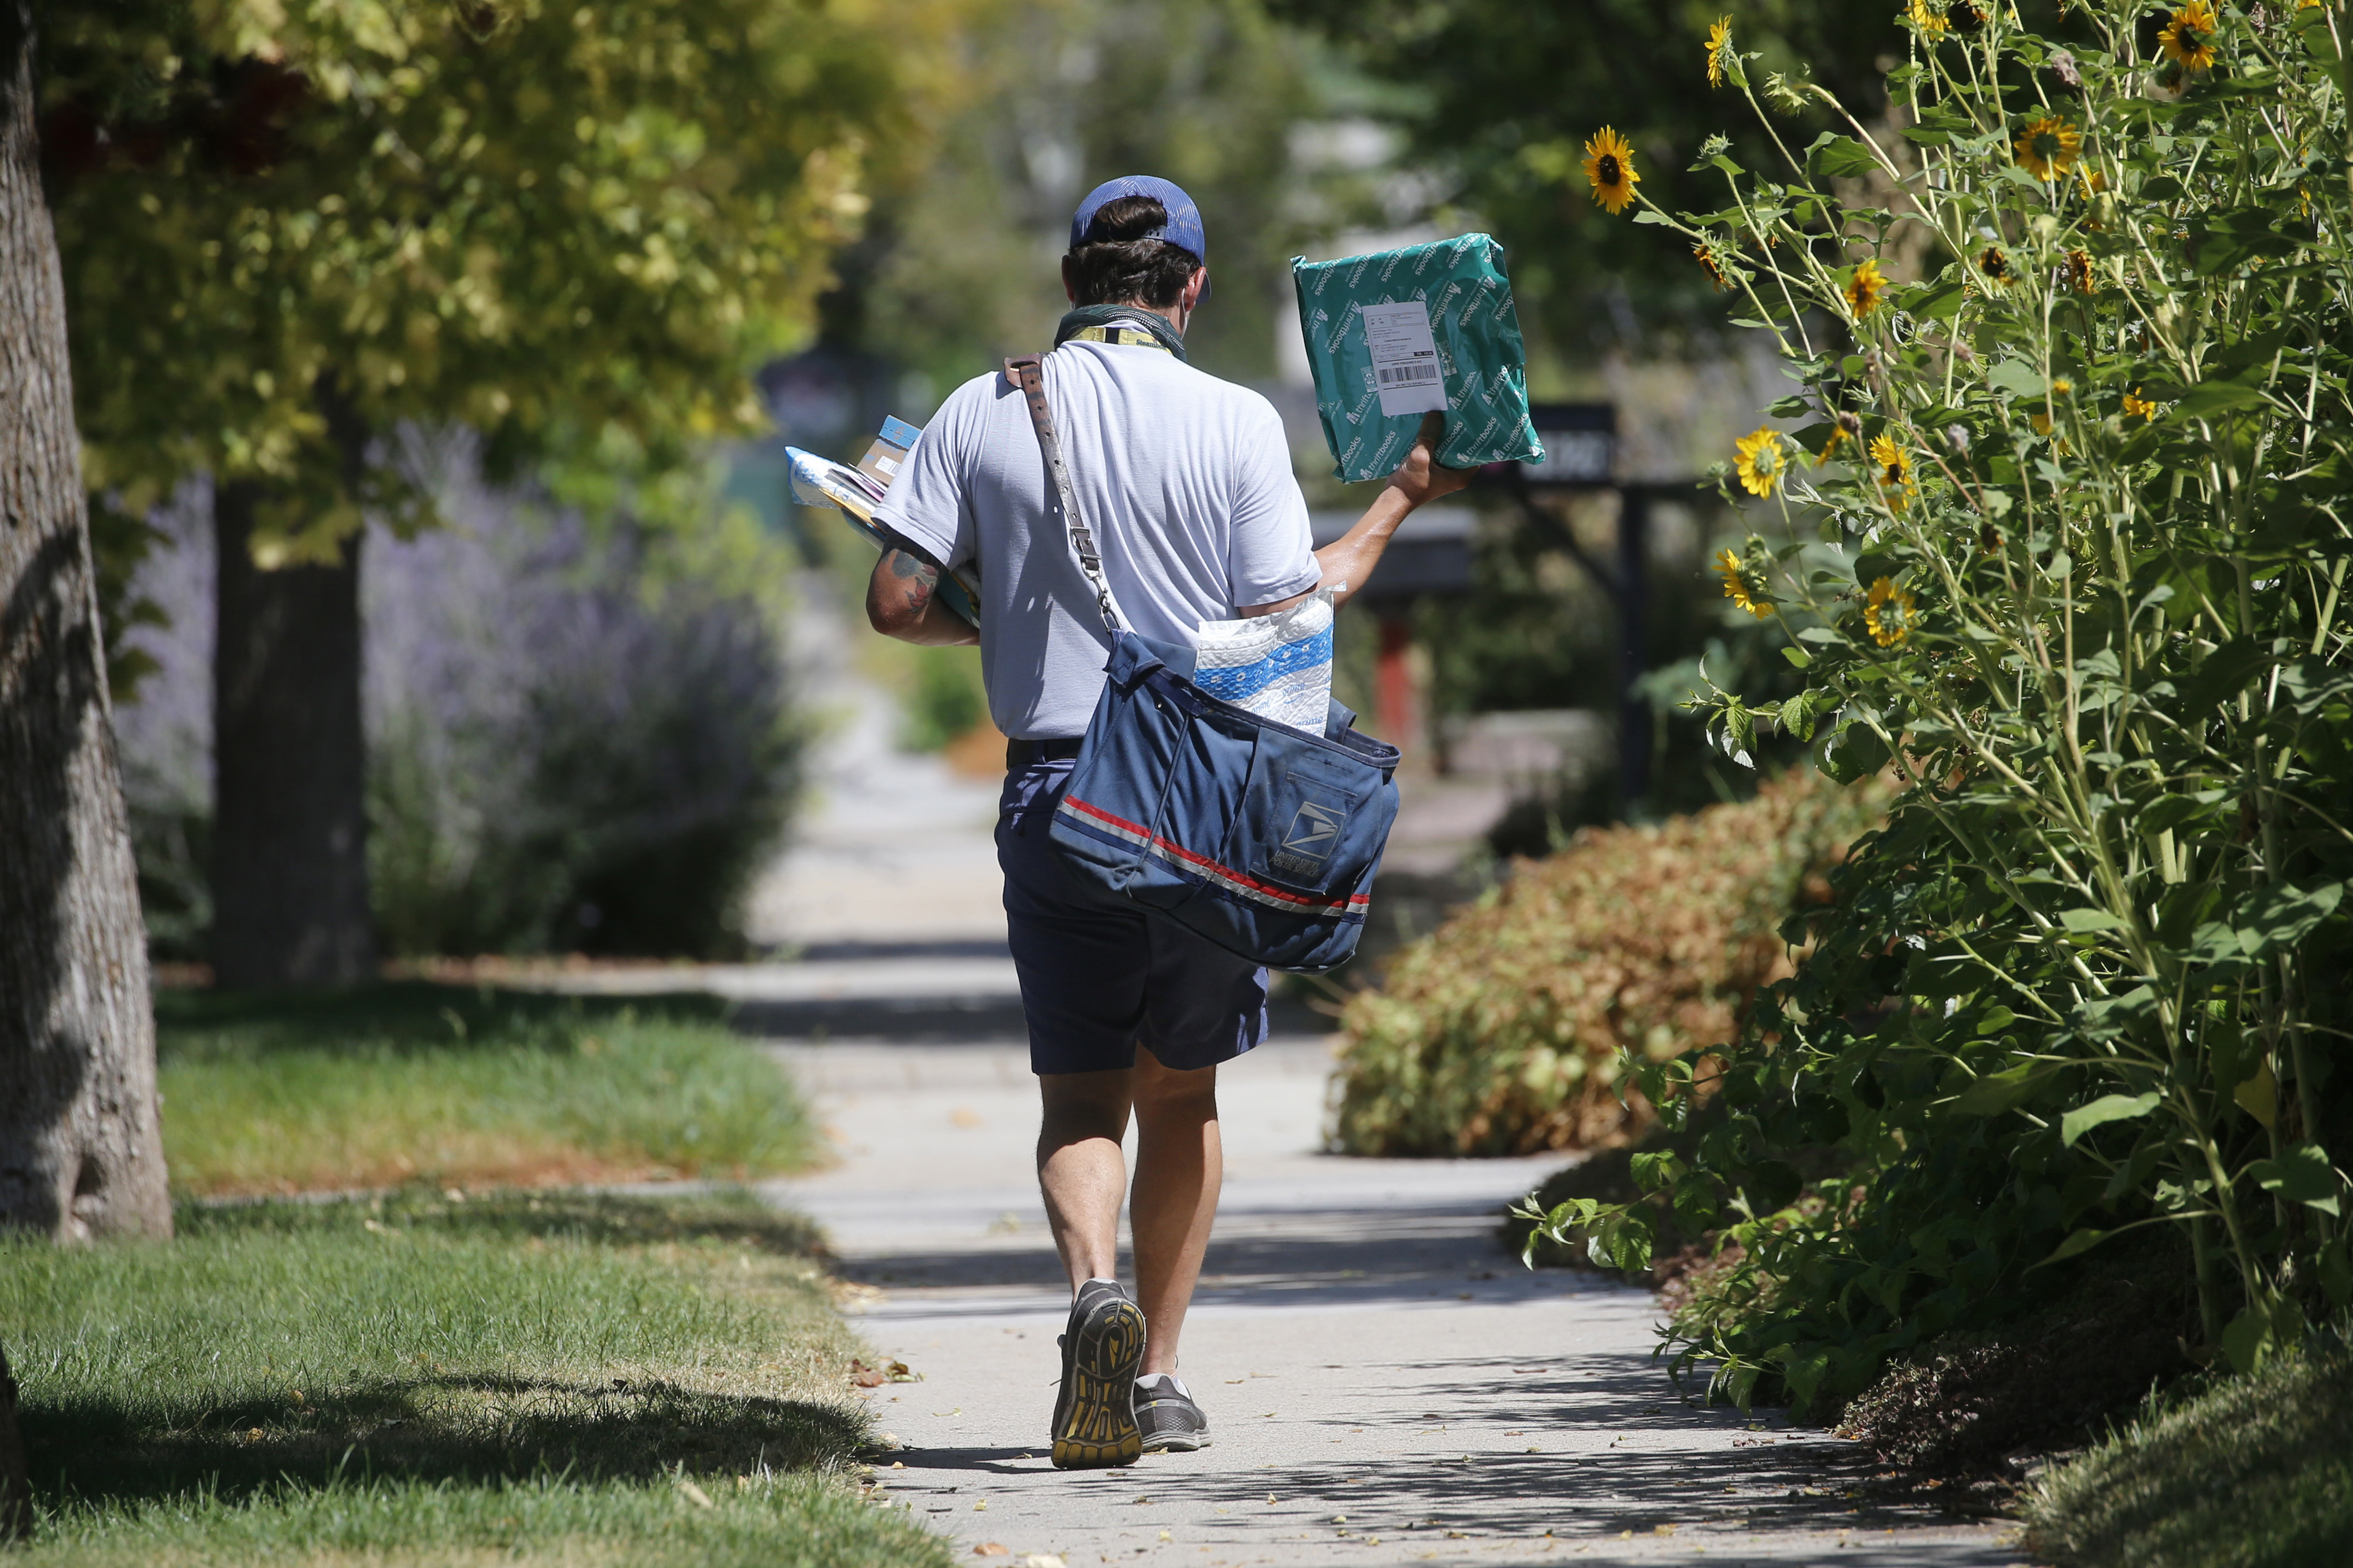 A U.S. Postal Service carrier delivers mail to homes in Salt Lake City, Utah. The Postal Service regularly cheats mail carriers out of their pay, a Center for Public Integrity investigation finds.